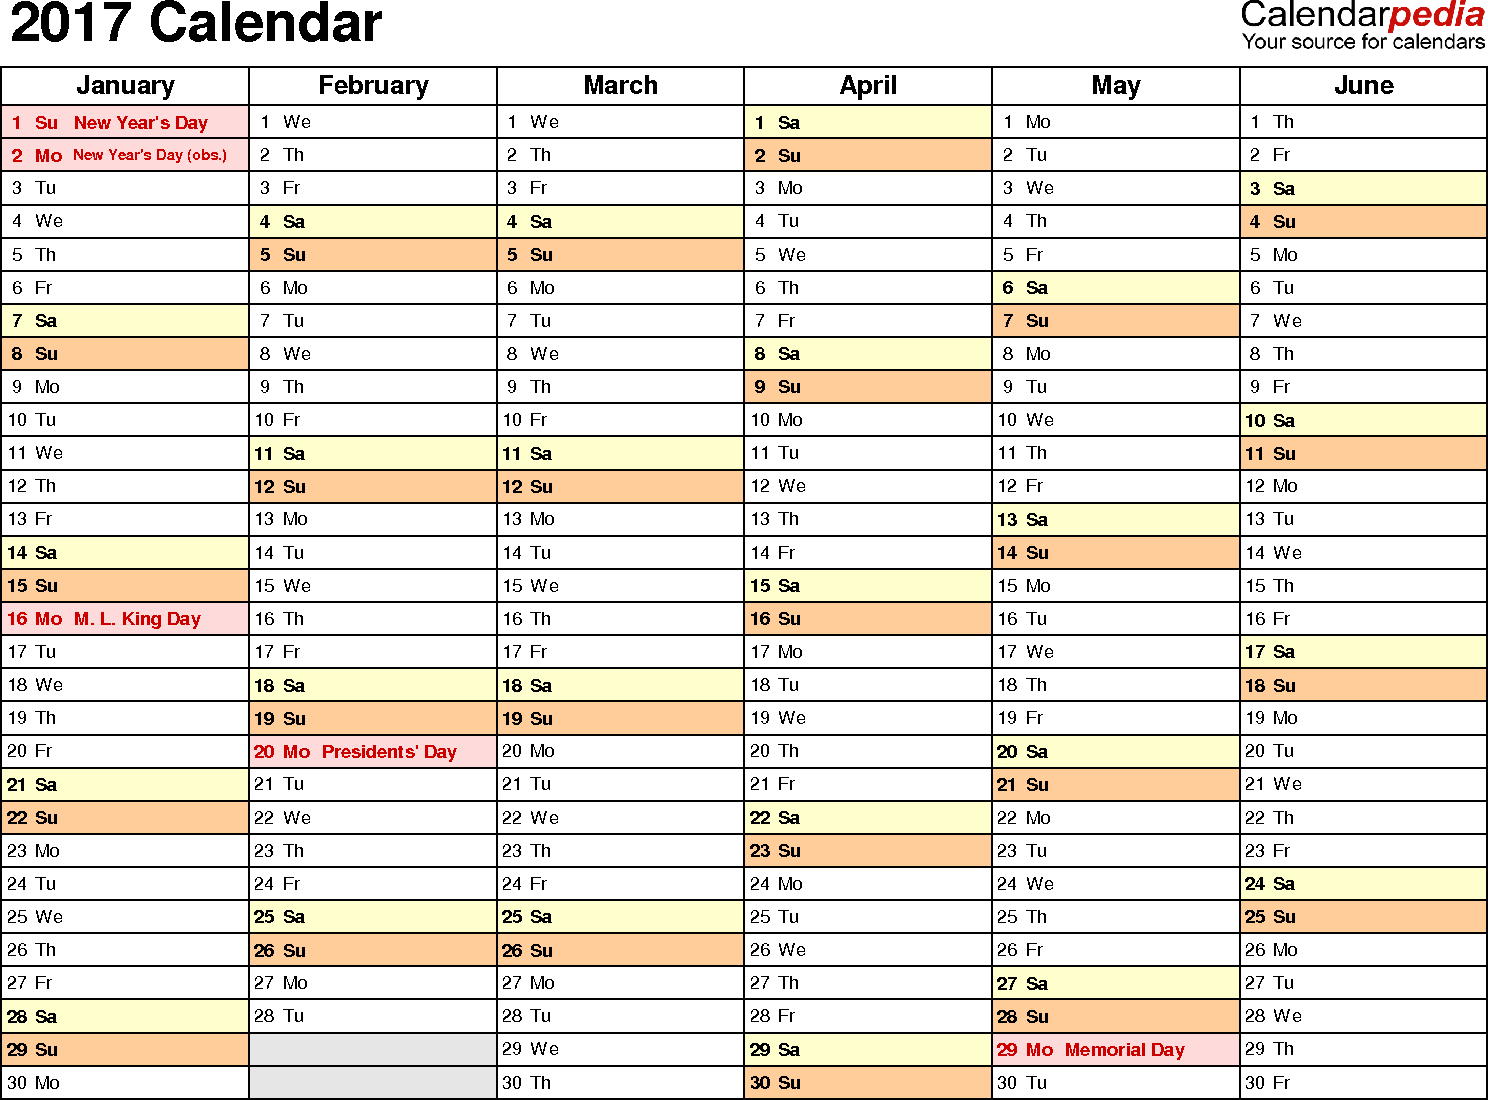 Ediblewildsus  Splendid  Calendar  Download  Free Printable Excel Templates Xls With Fascinating Template   Calendar For Excel Months Horizontally  Pages Landscape Orientation With Delectable  Excel Also Excel Pivot Tables Training In Addition Insert Pdf File Into Excel And Excel Strings As Well As Dates Excel Additionally Excel Tab Order From Calendarpediacom With Ediblewildsus  Fascinating  Calendar  Download  Free Printable Excel Templates Xls With Delectable Template   Calendar For Excel Months Horizontally  Pages Landscape Orientation And Splendid  Excel Also Excel Pivot Tables Training In Addition Insert Pdf File Into Excel From Calendarpediacom